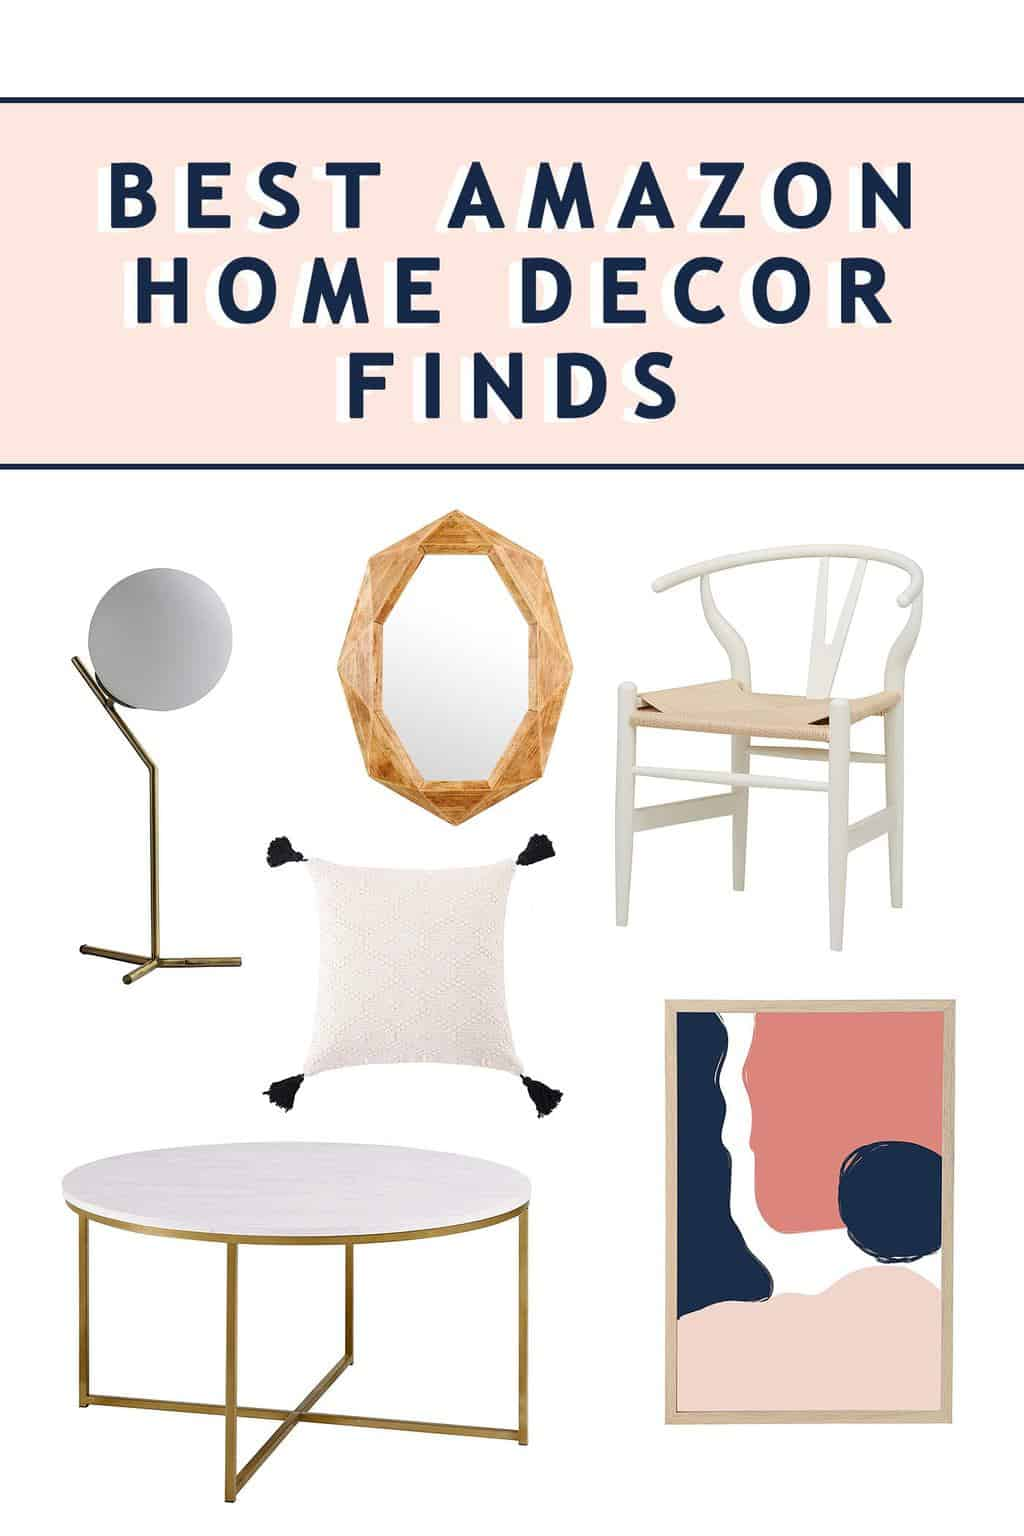 Amazon Home Decor: Our Favorite Amazon Furniture Finds -